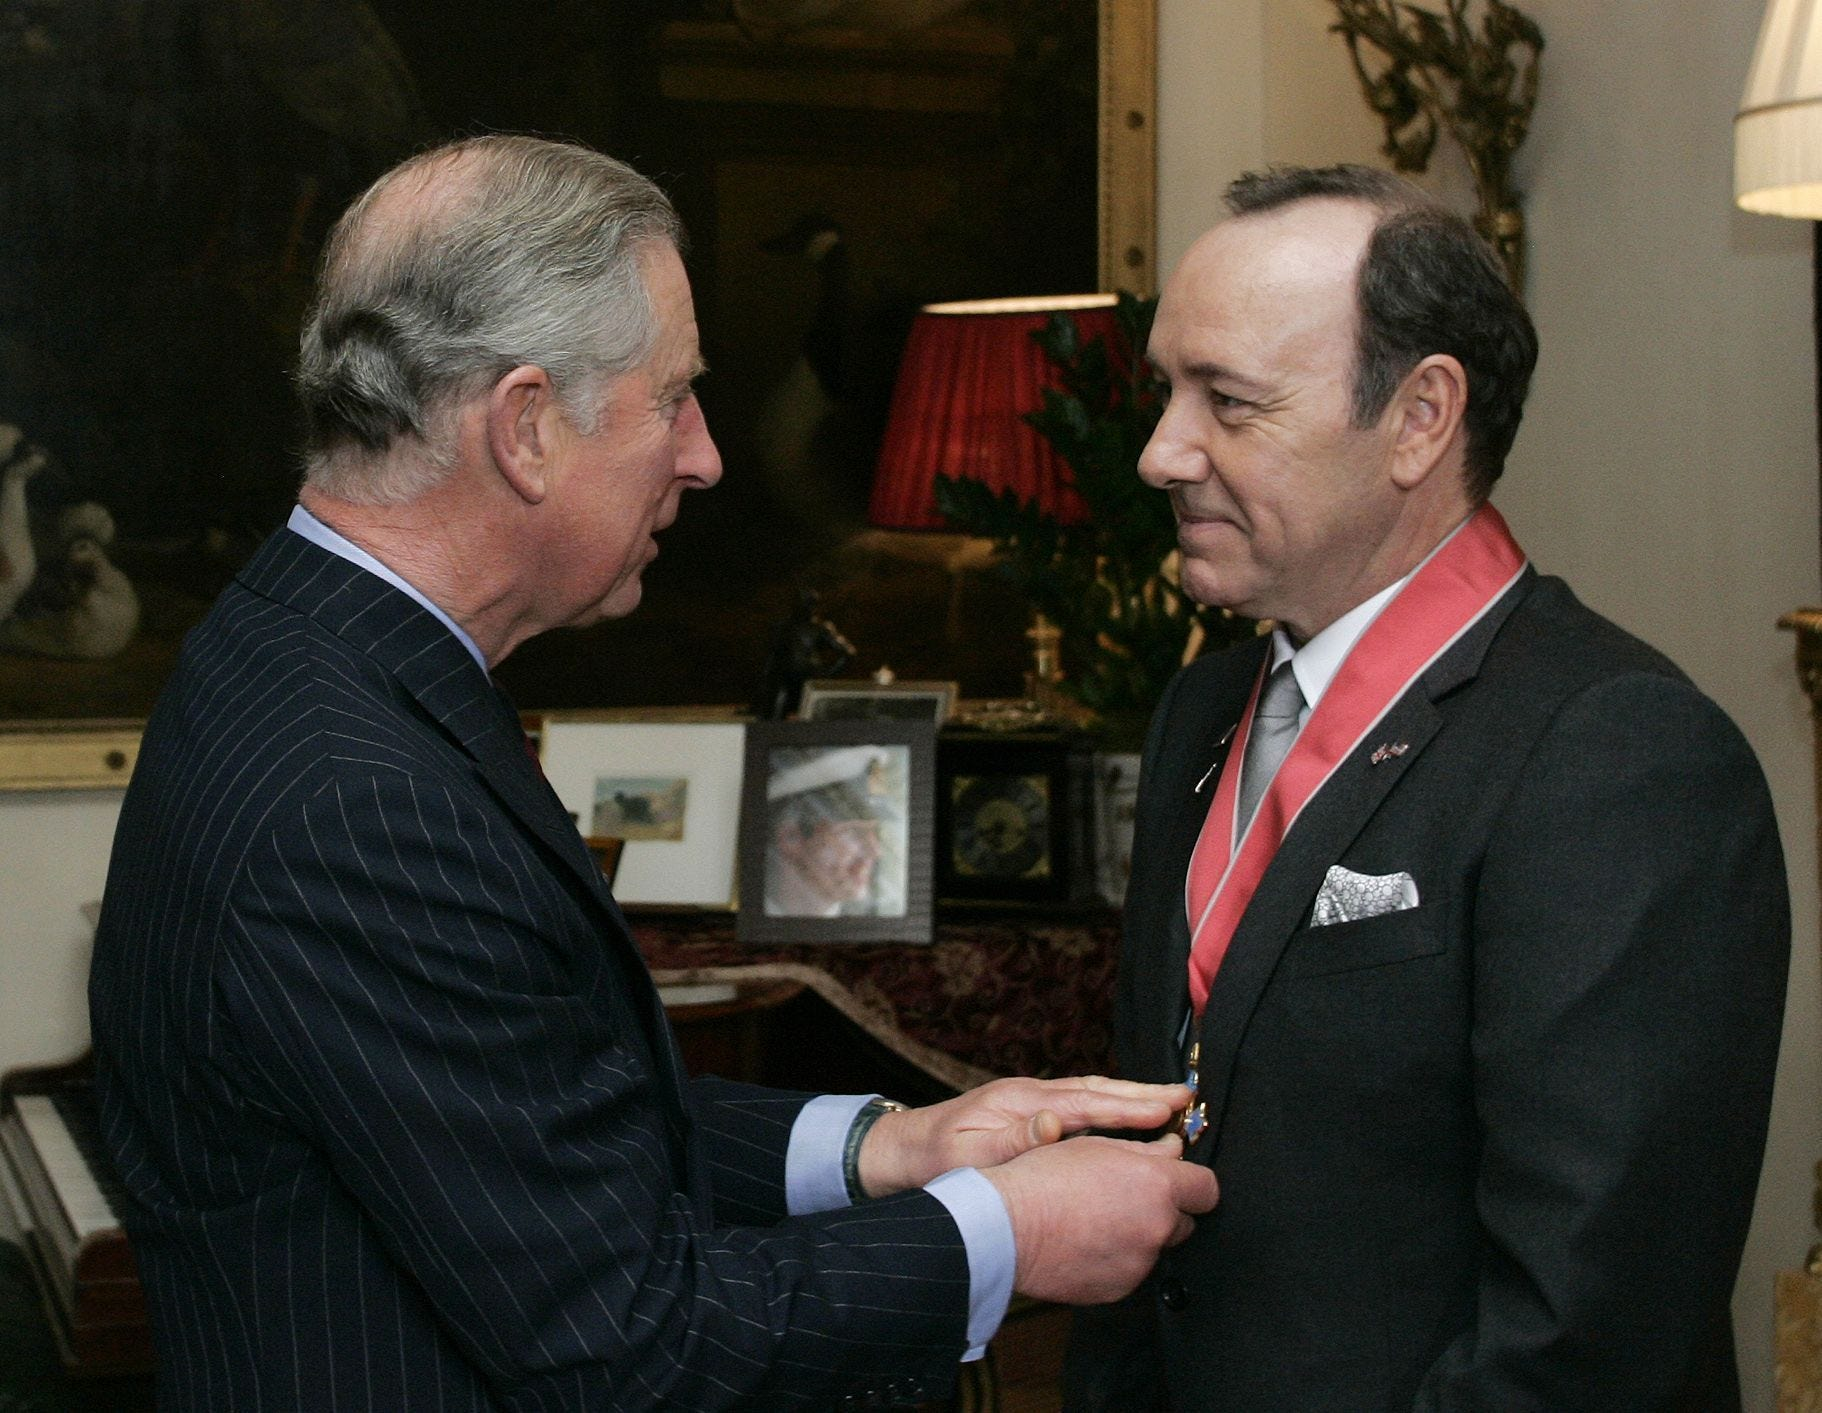 ORG XMIT: LSU103 U.S. actor Kevin Spacey, right, receives